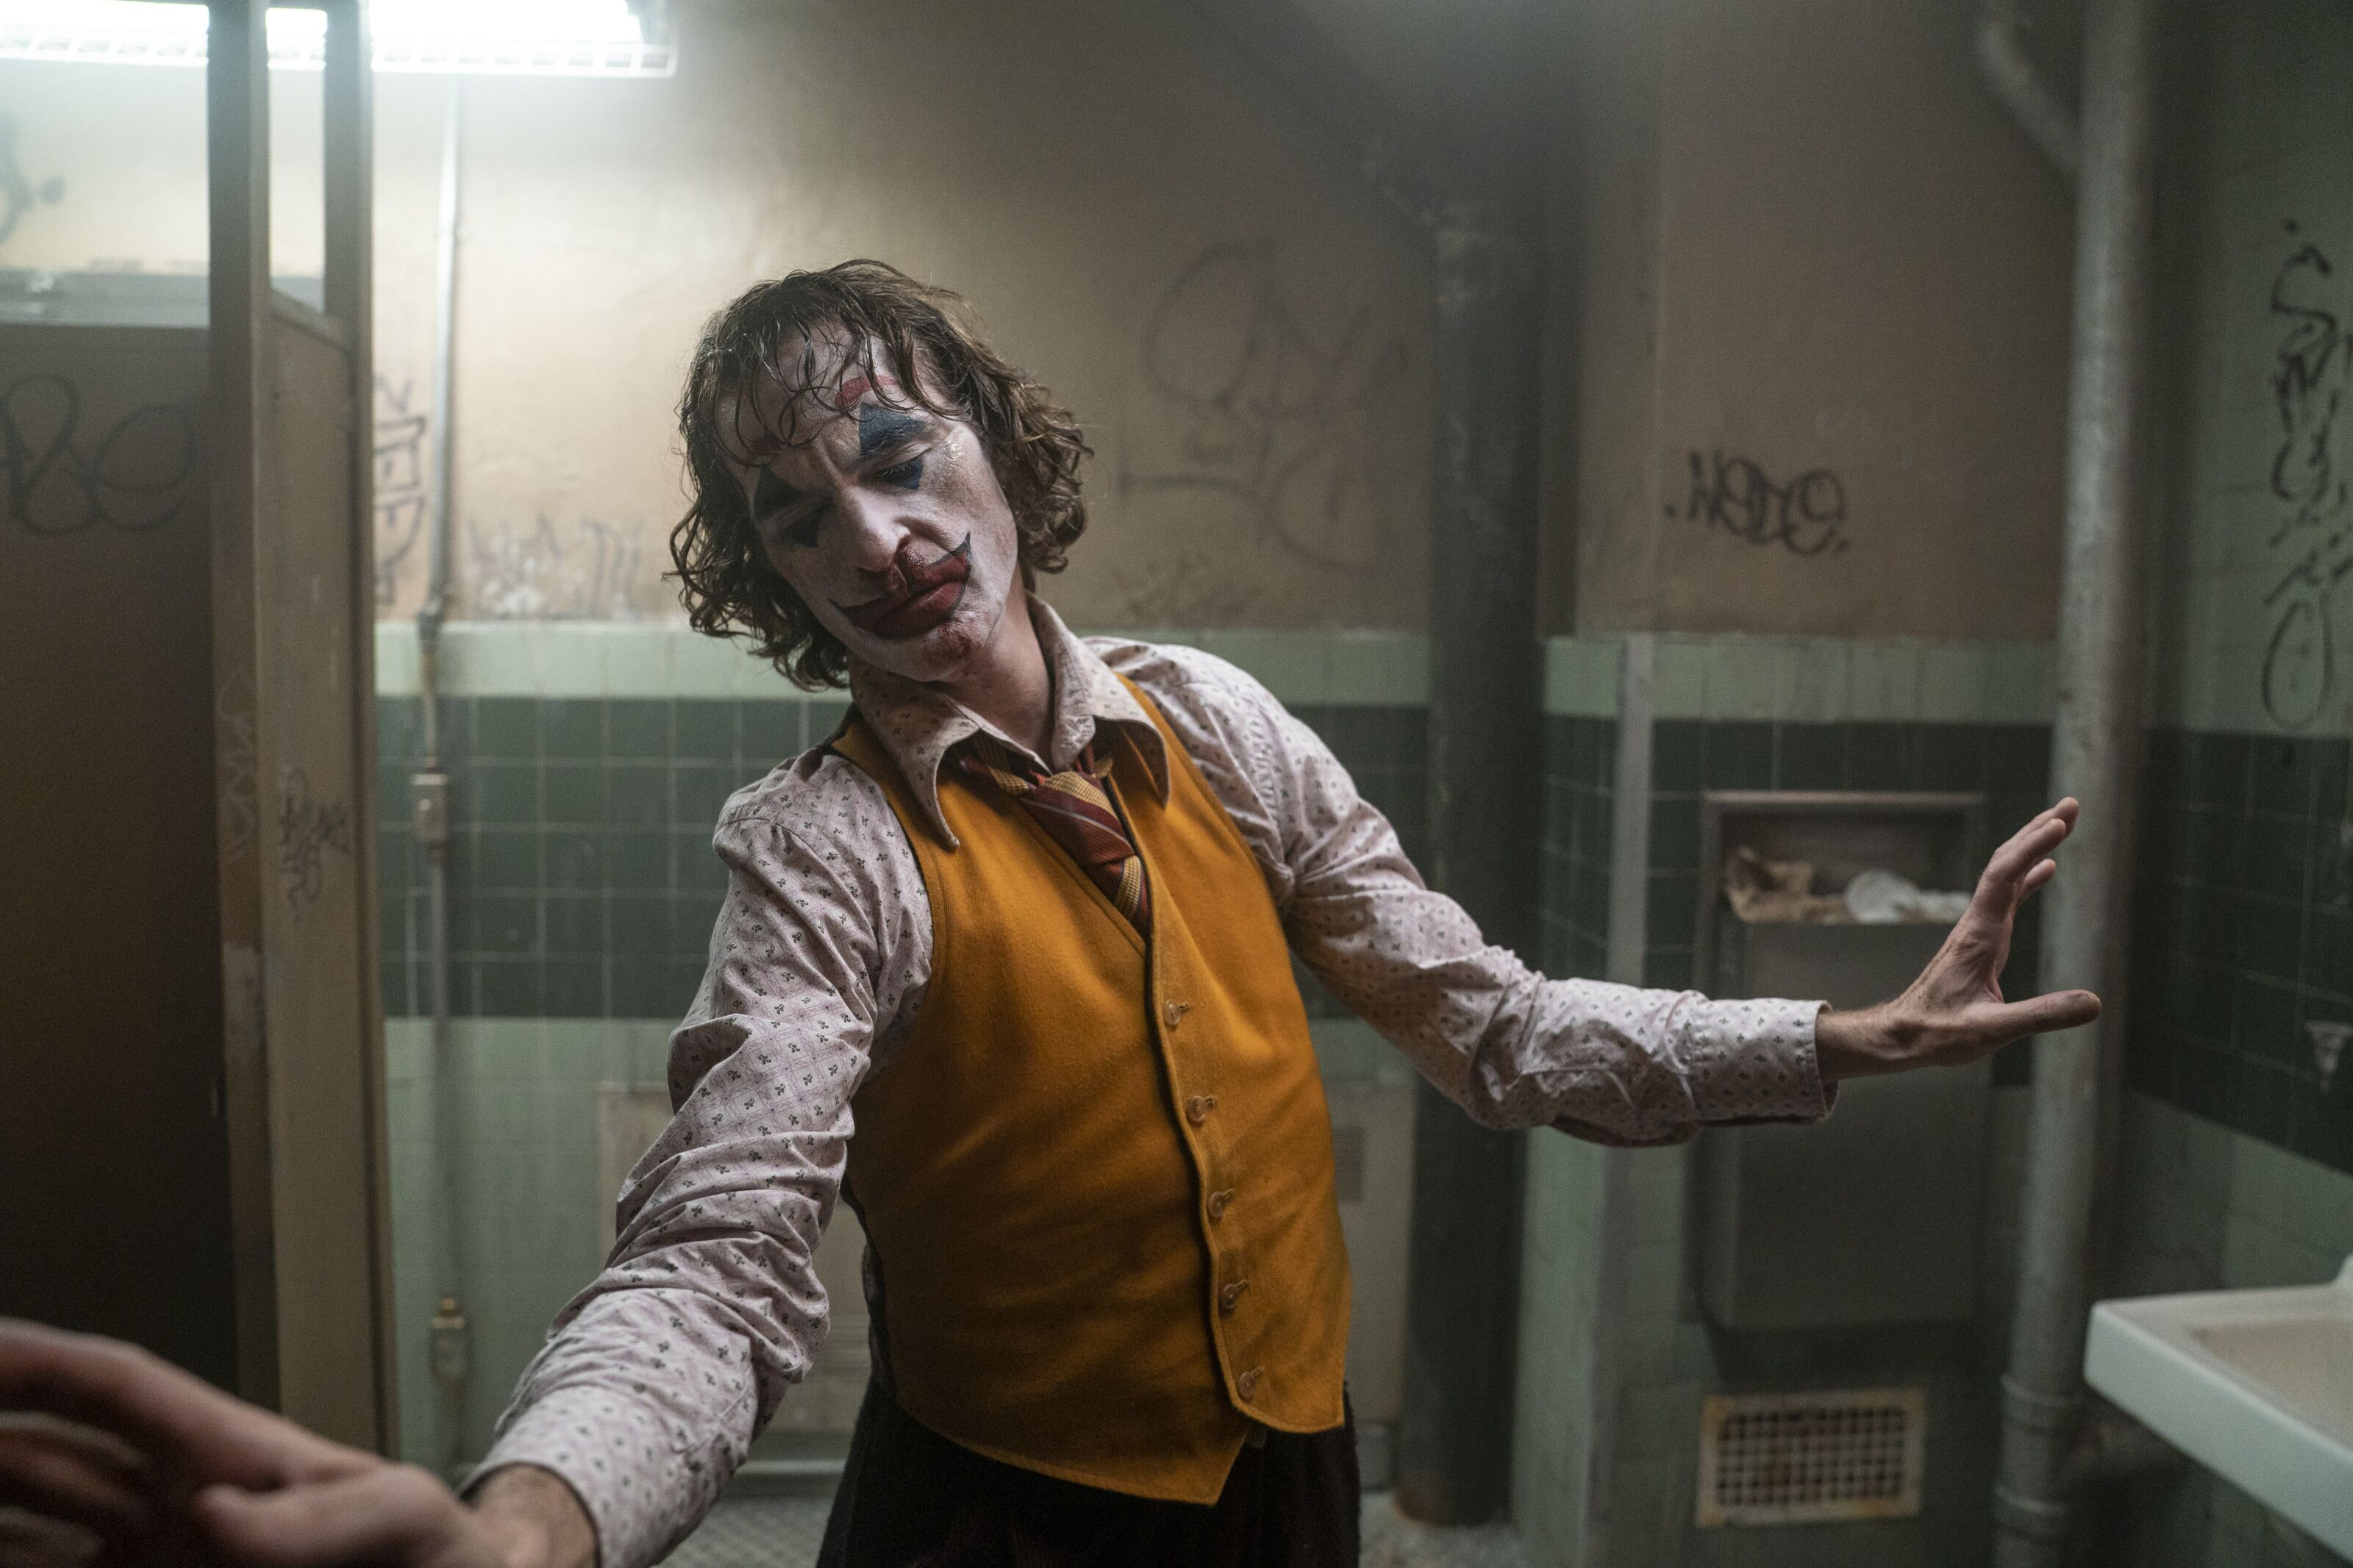 Joker debuts to over $90 million during its opening weekend